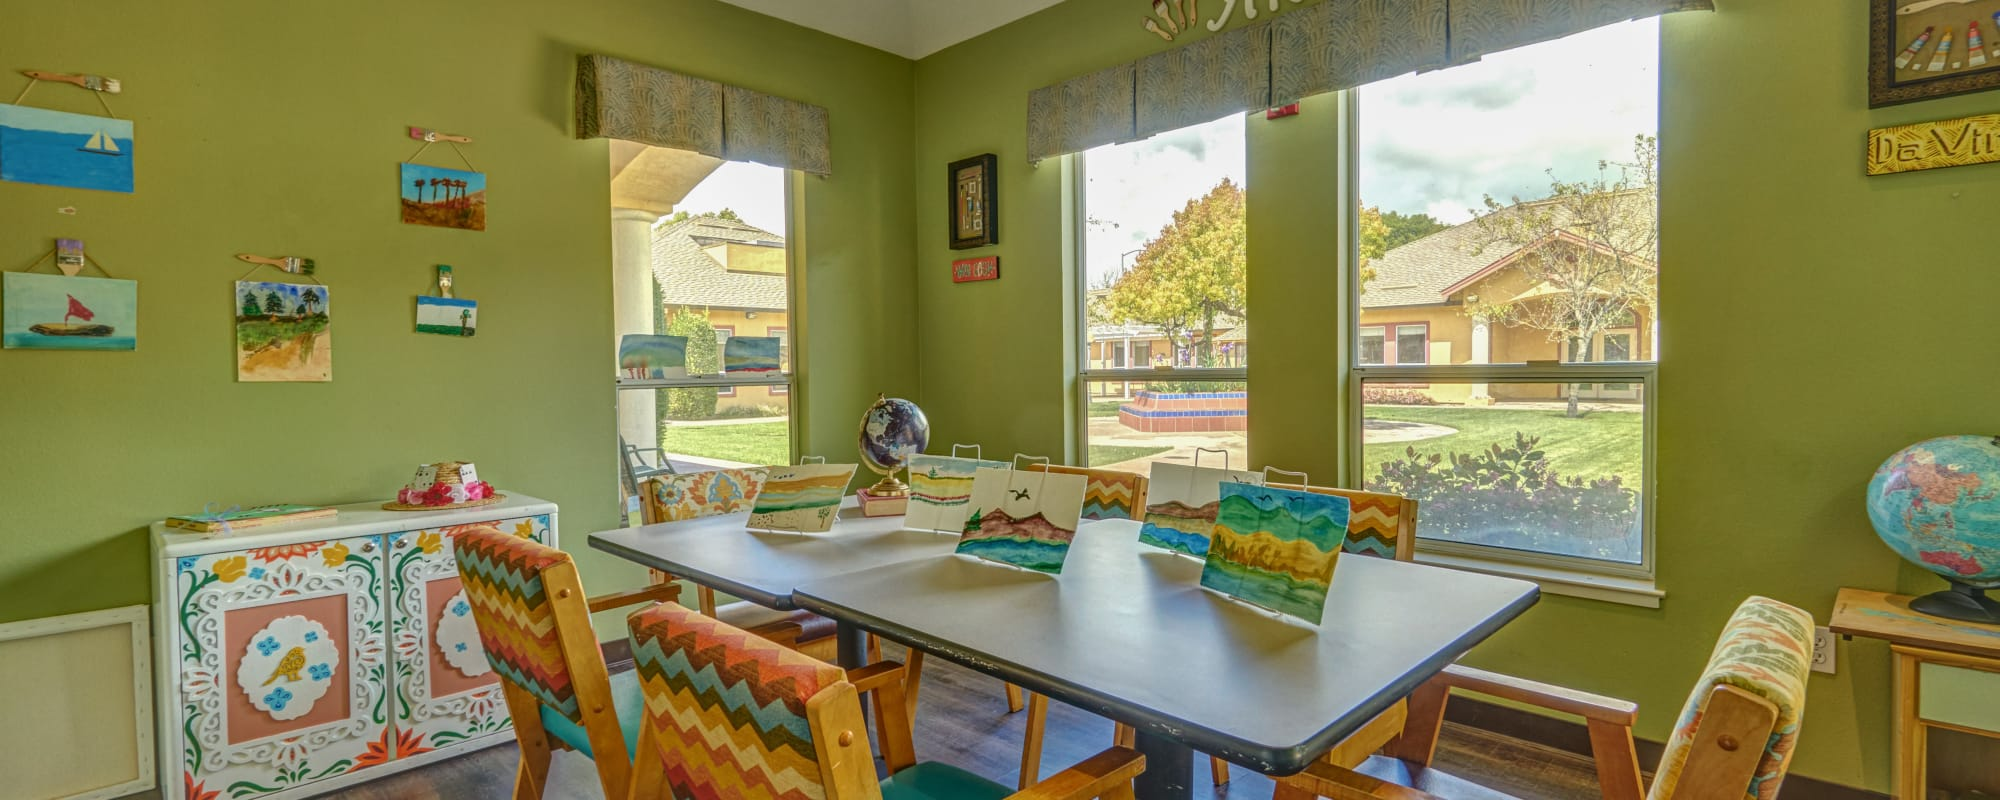 MuirWoods Memory Care offers a dining area in Petaluma, California